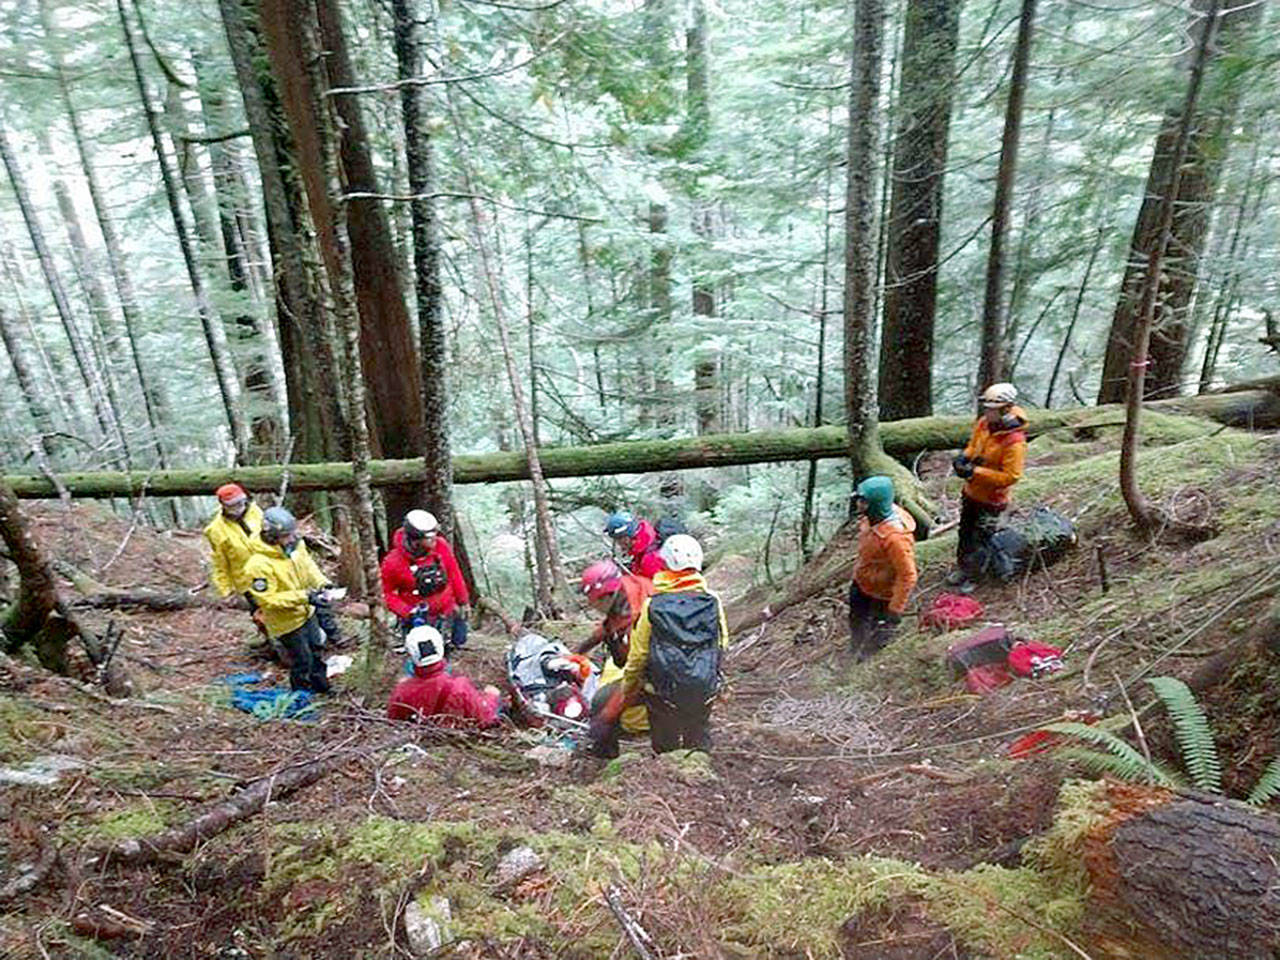 Search and rescue crews spent close to 24 hours rescuing a woman with serious injuries from the woods east of Darrington in October. (Snohomish County Sheriff's Office)